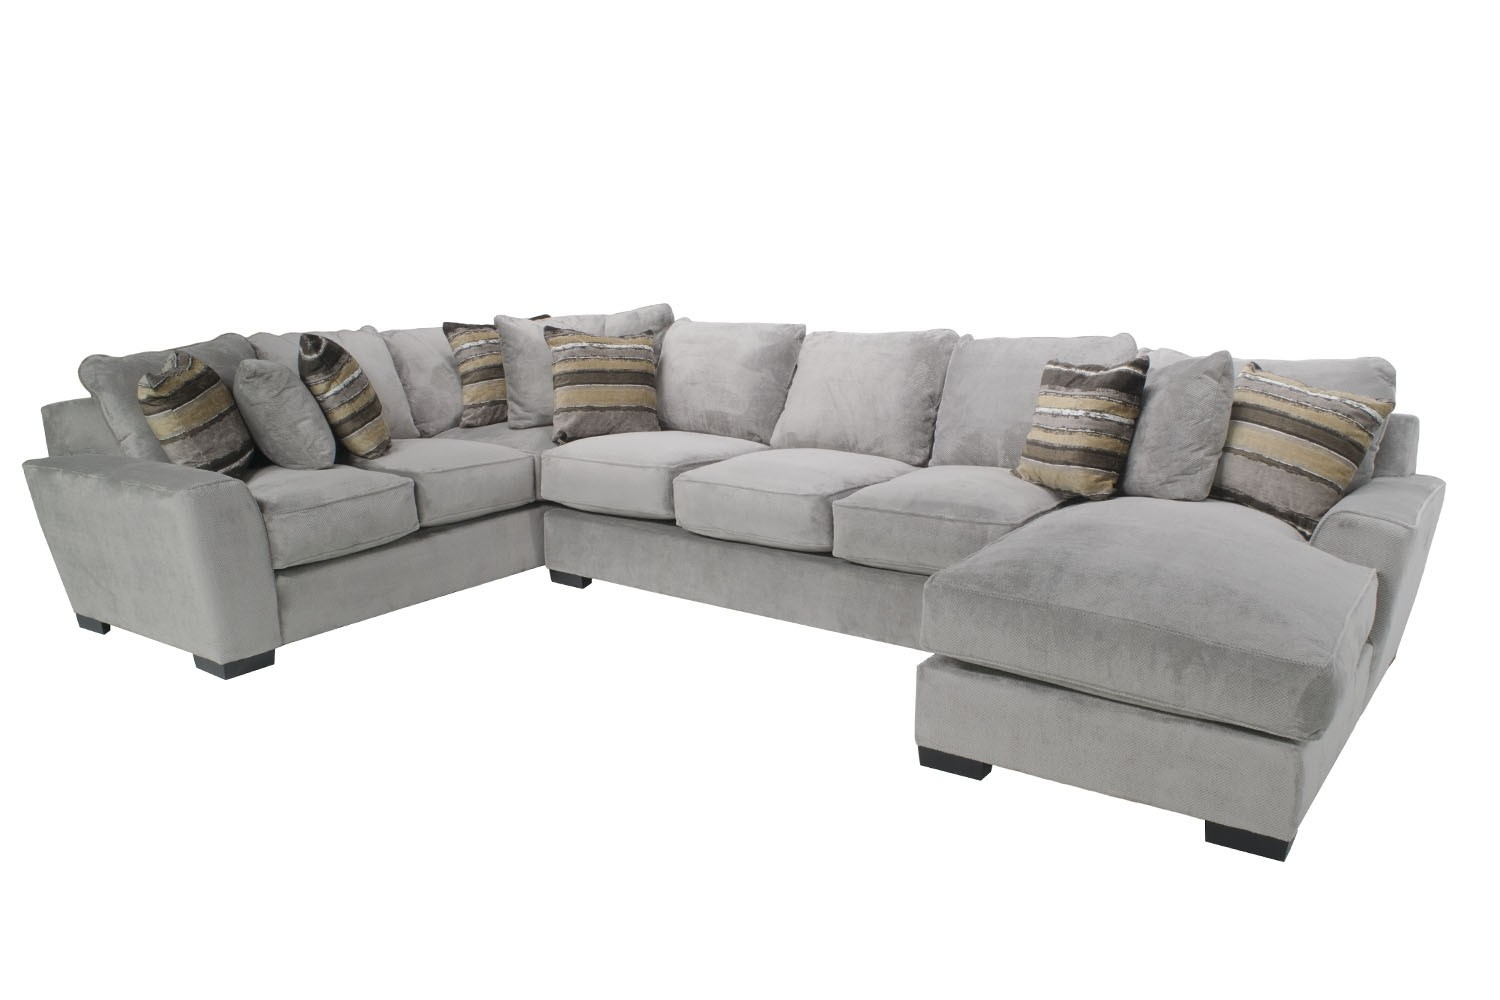 Oracle Sectional Living Room | Mor Furniture for Less